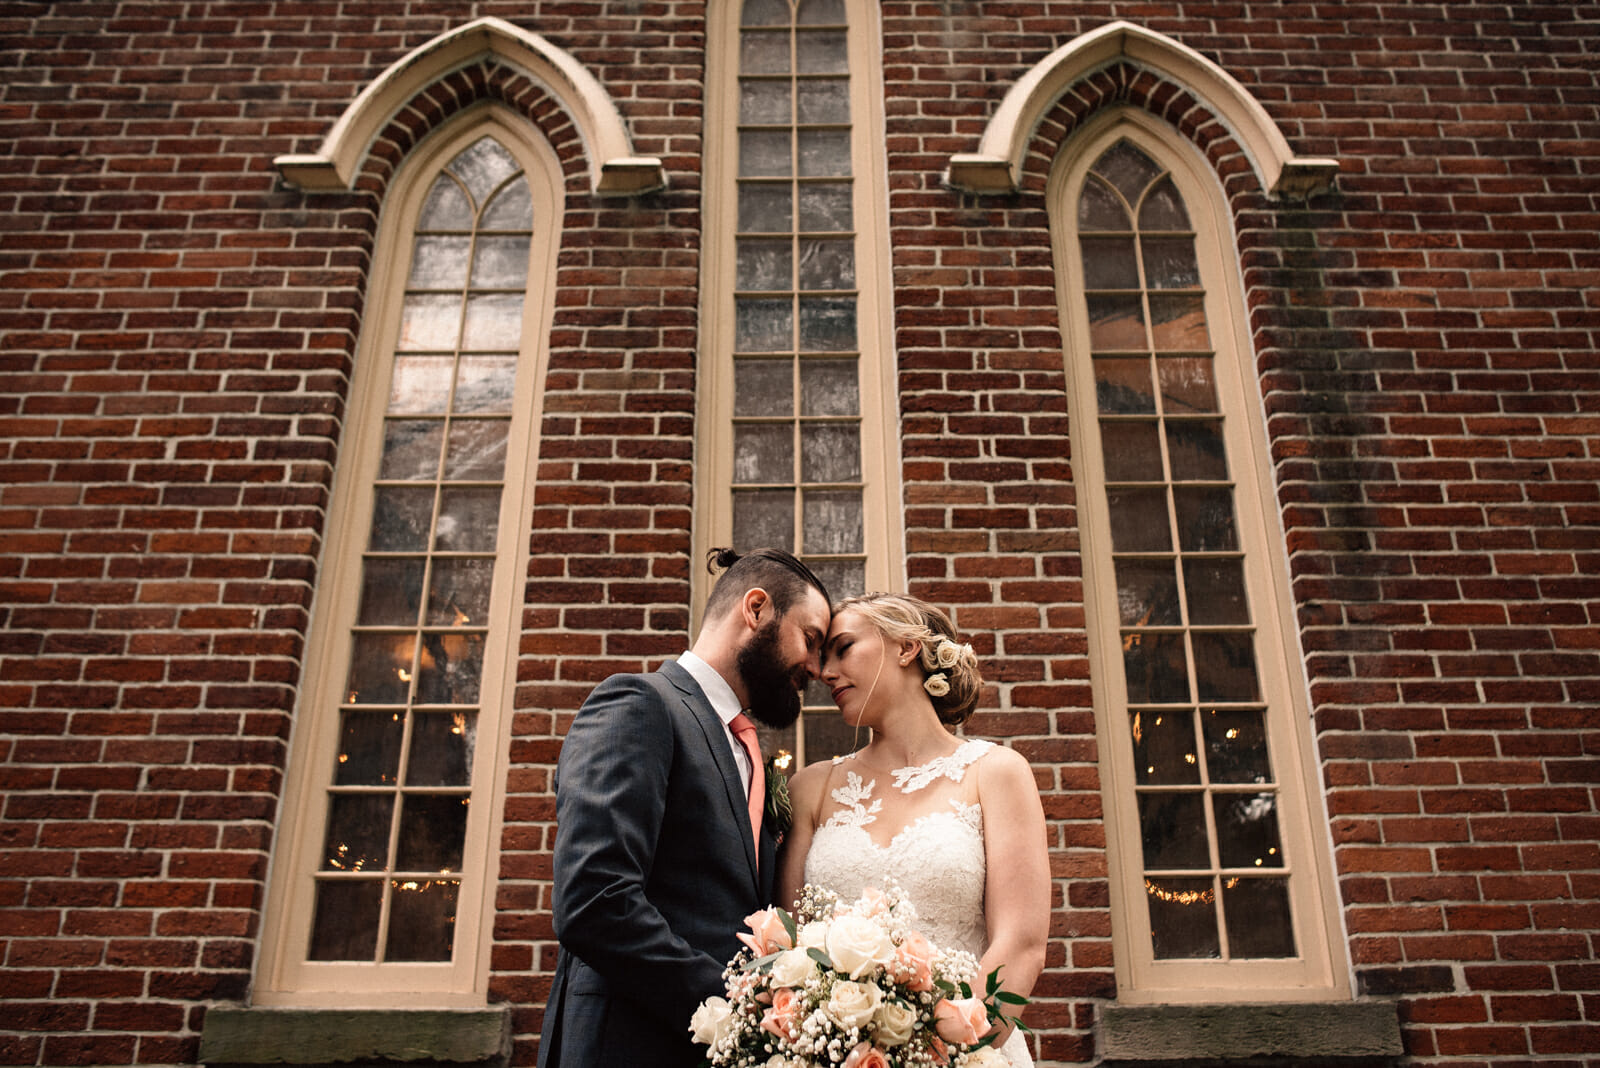 wedding photo of bride and groom in front of gothic windows